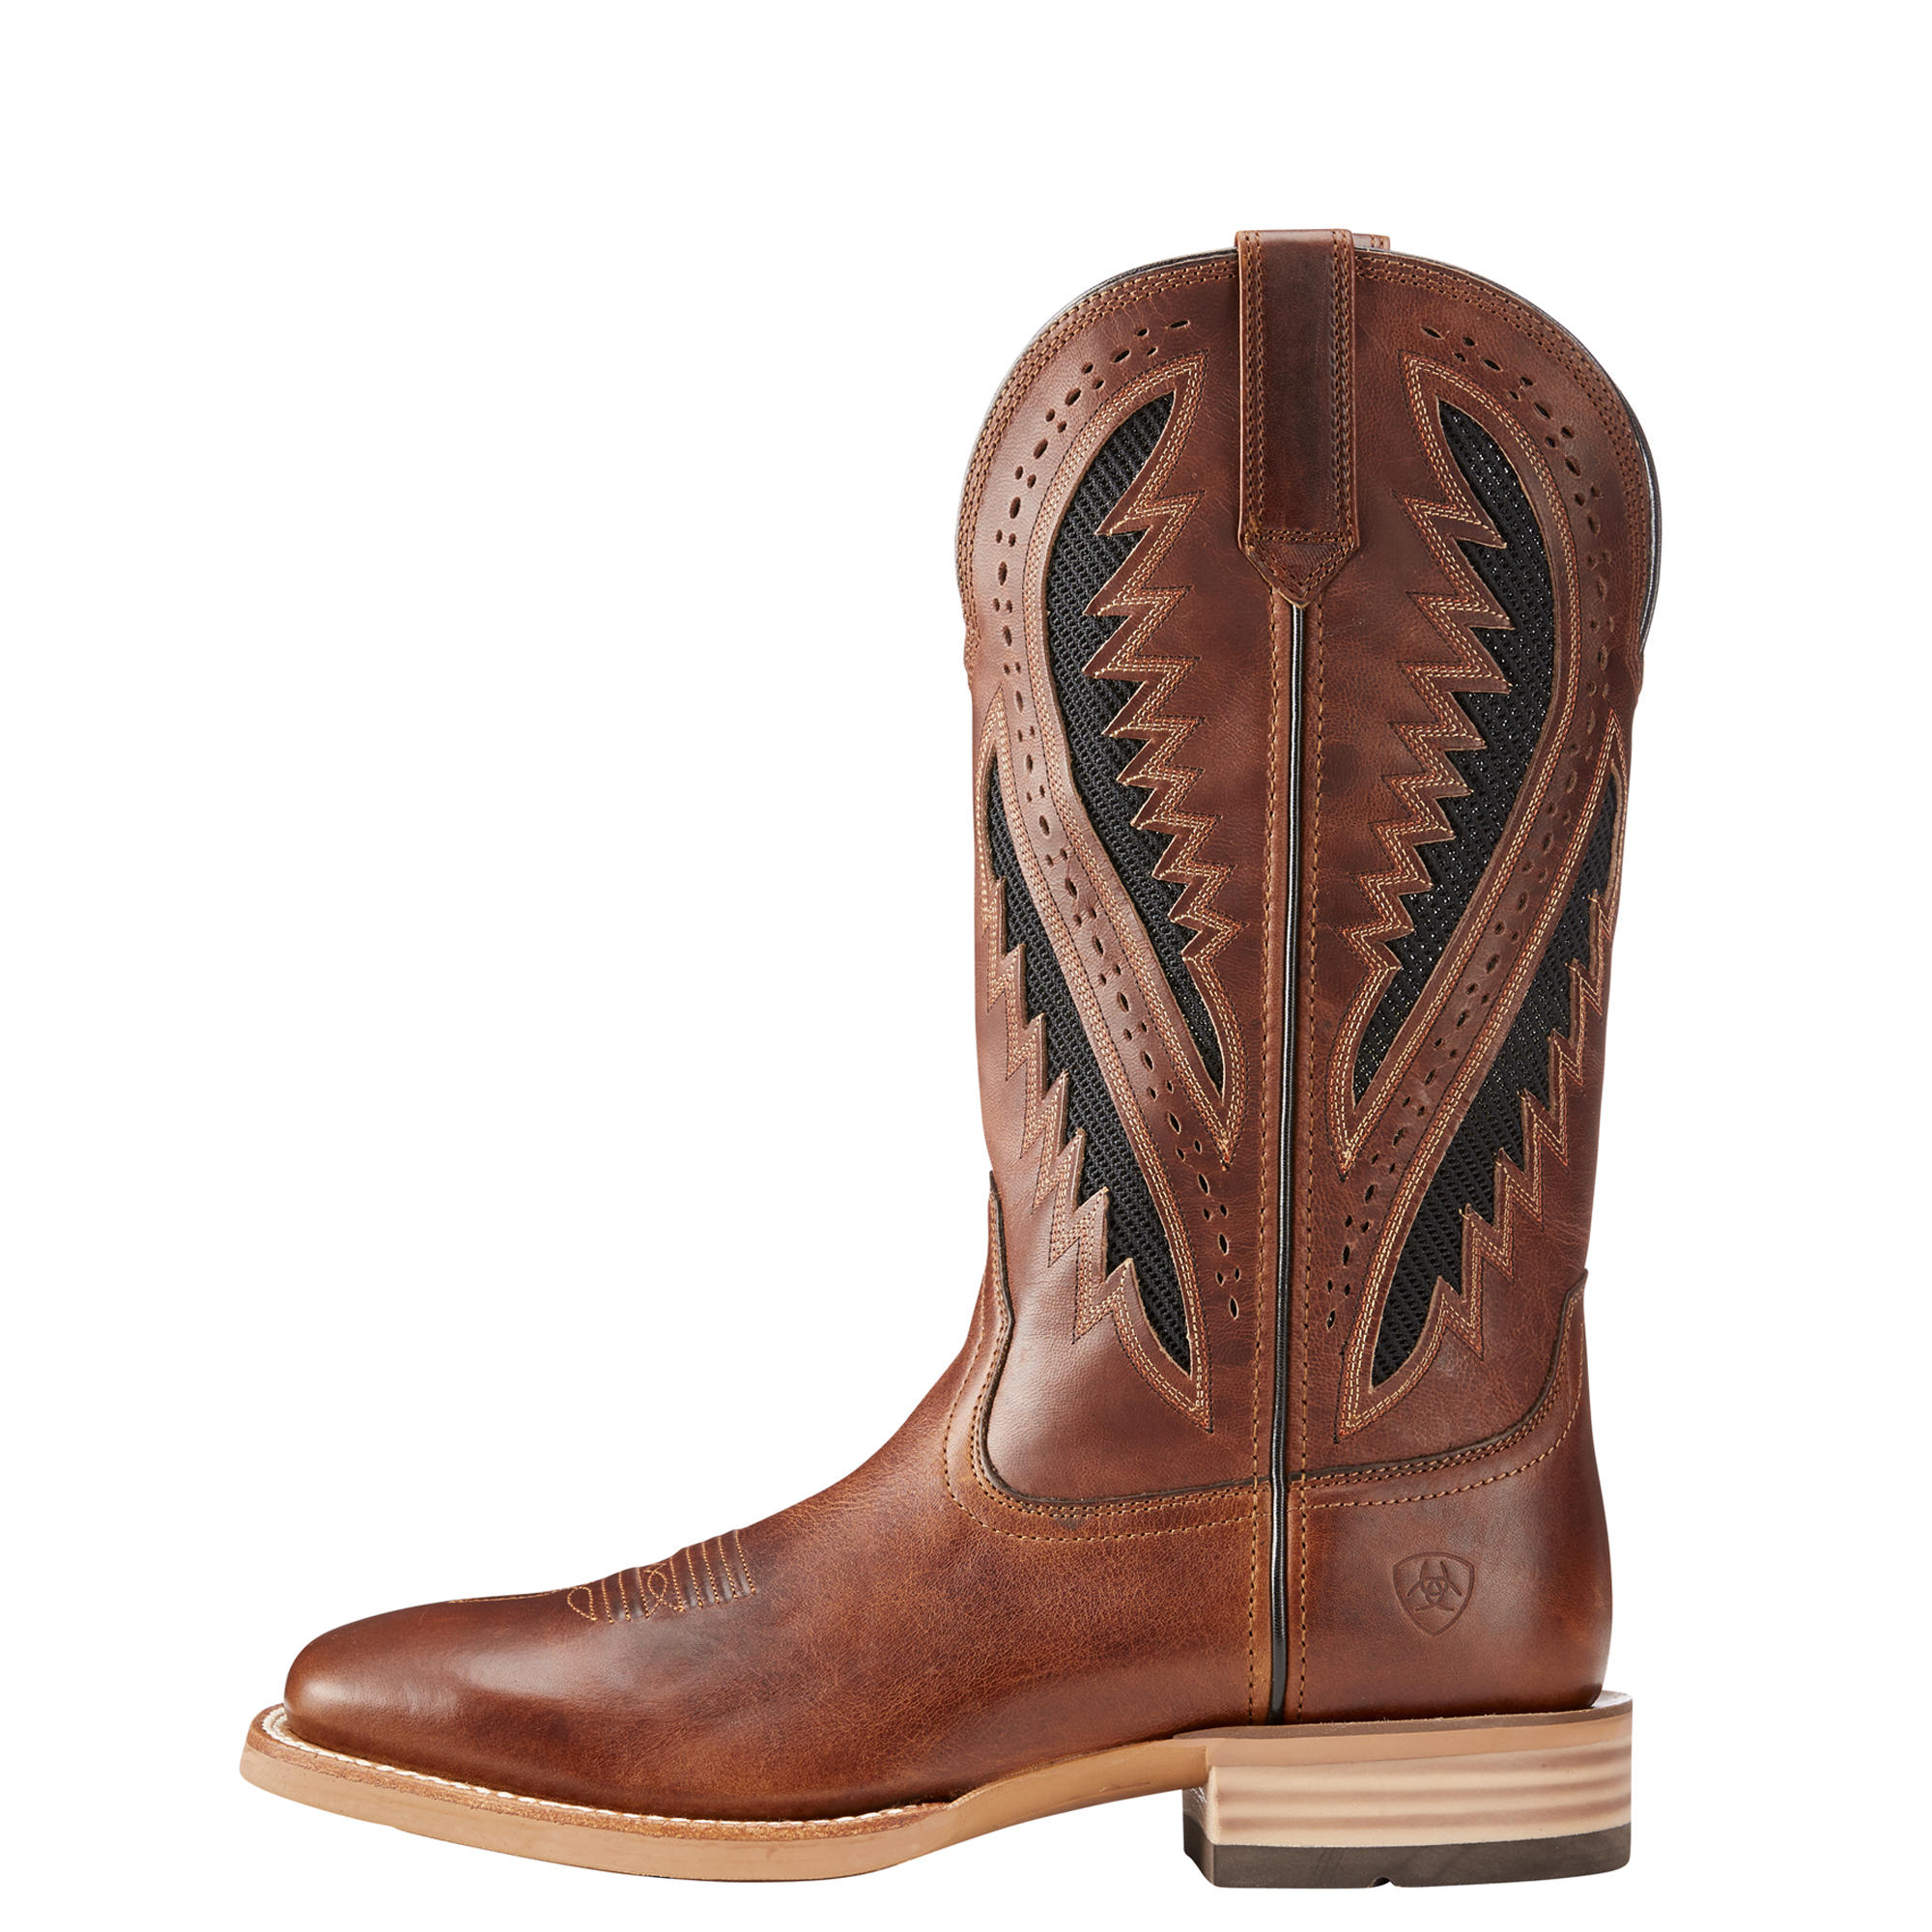 Mens cowboy western riding,fashion boot QUICKDRAW VentTEK # 10023218 side view